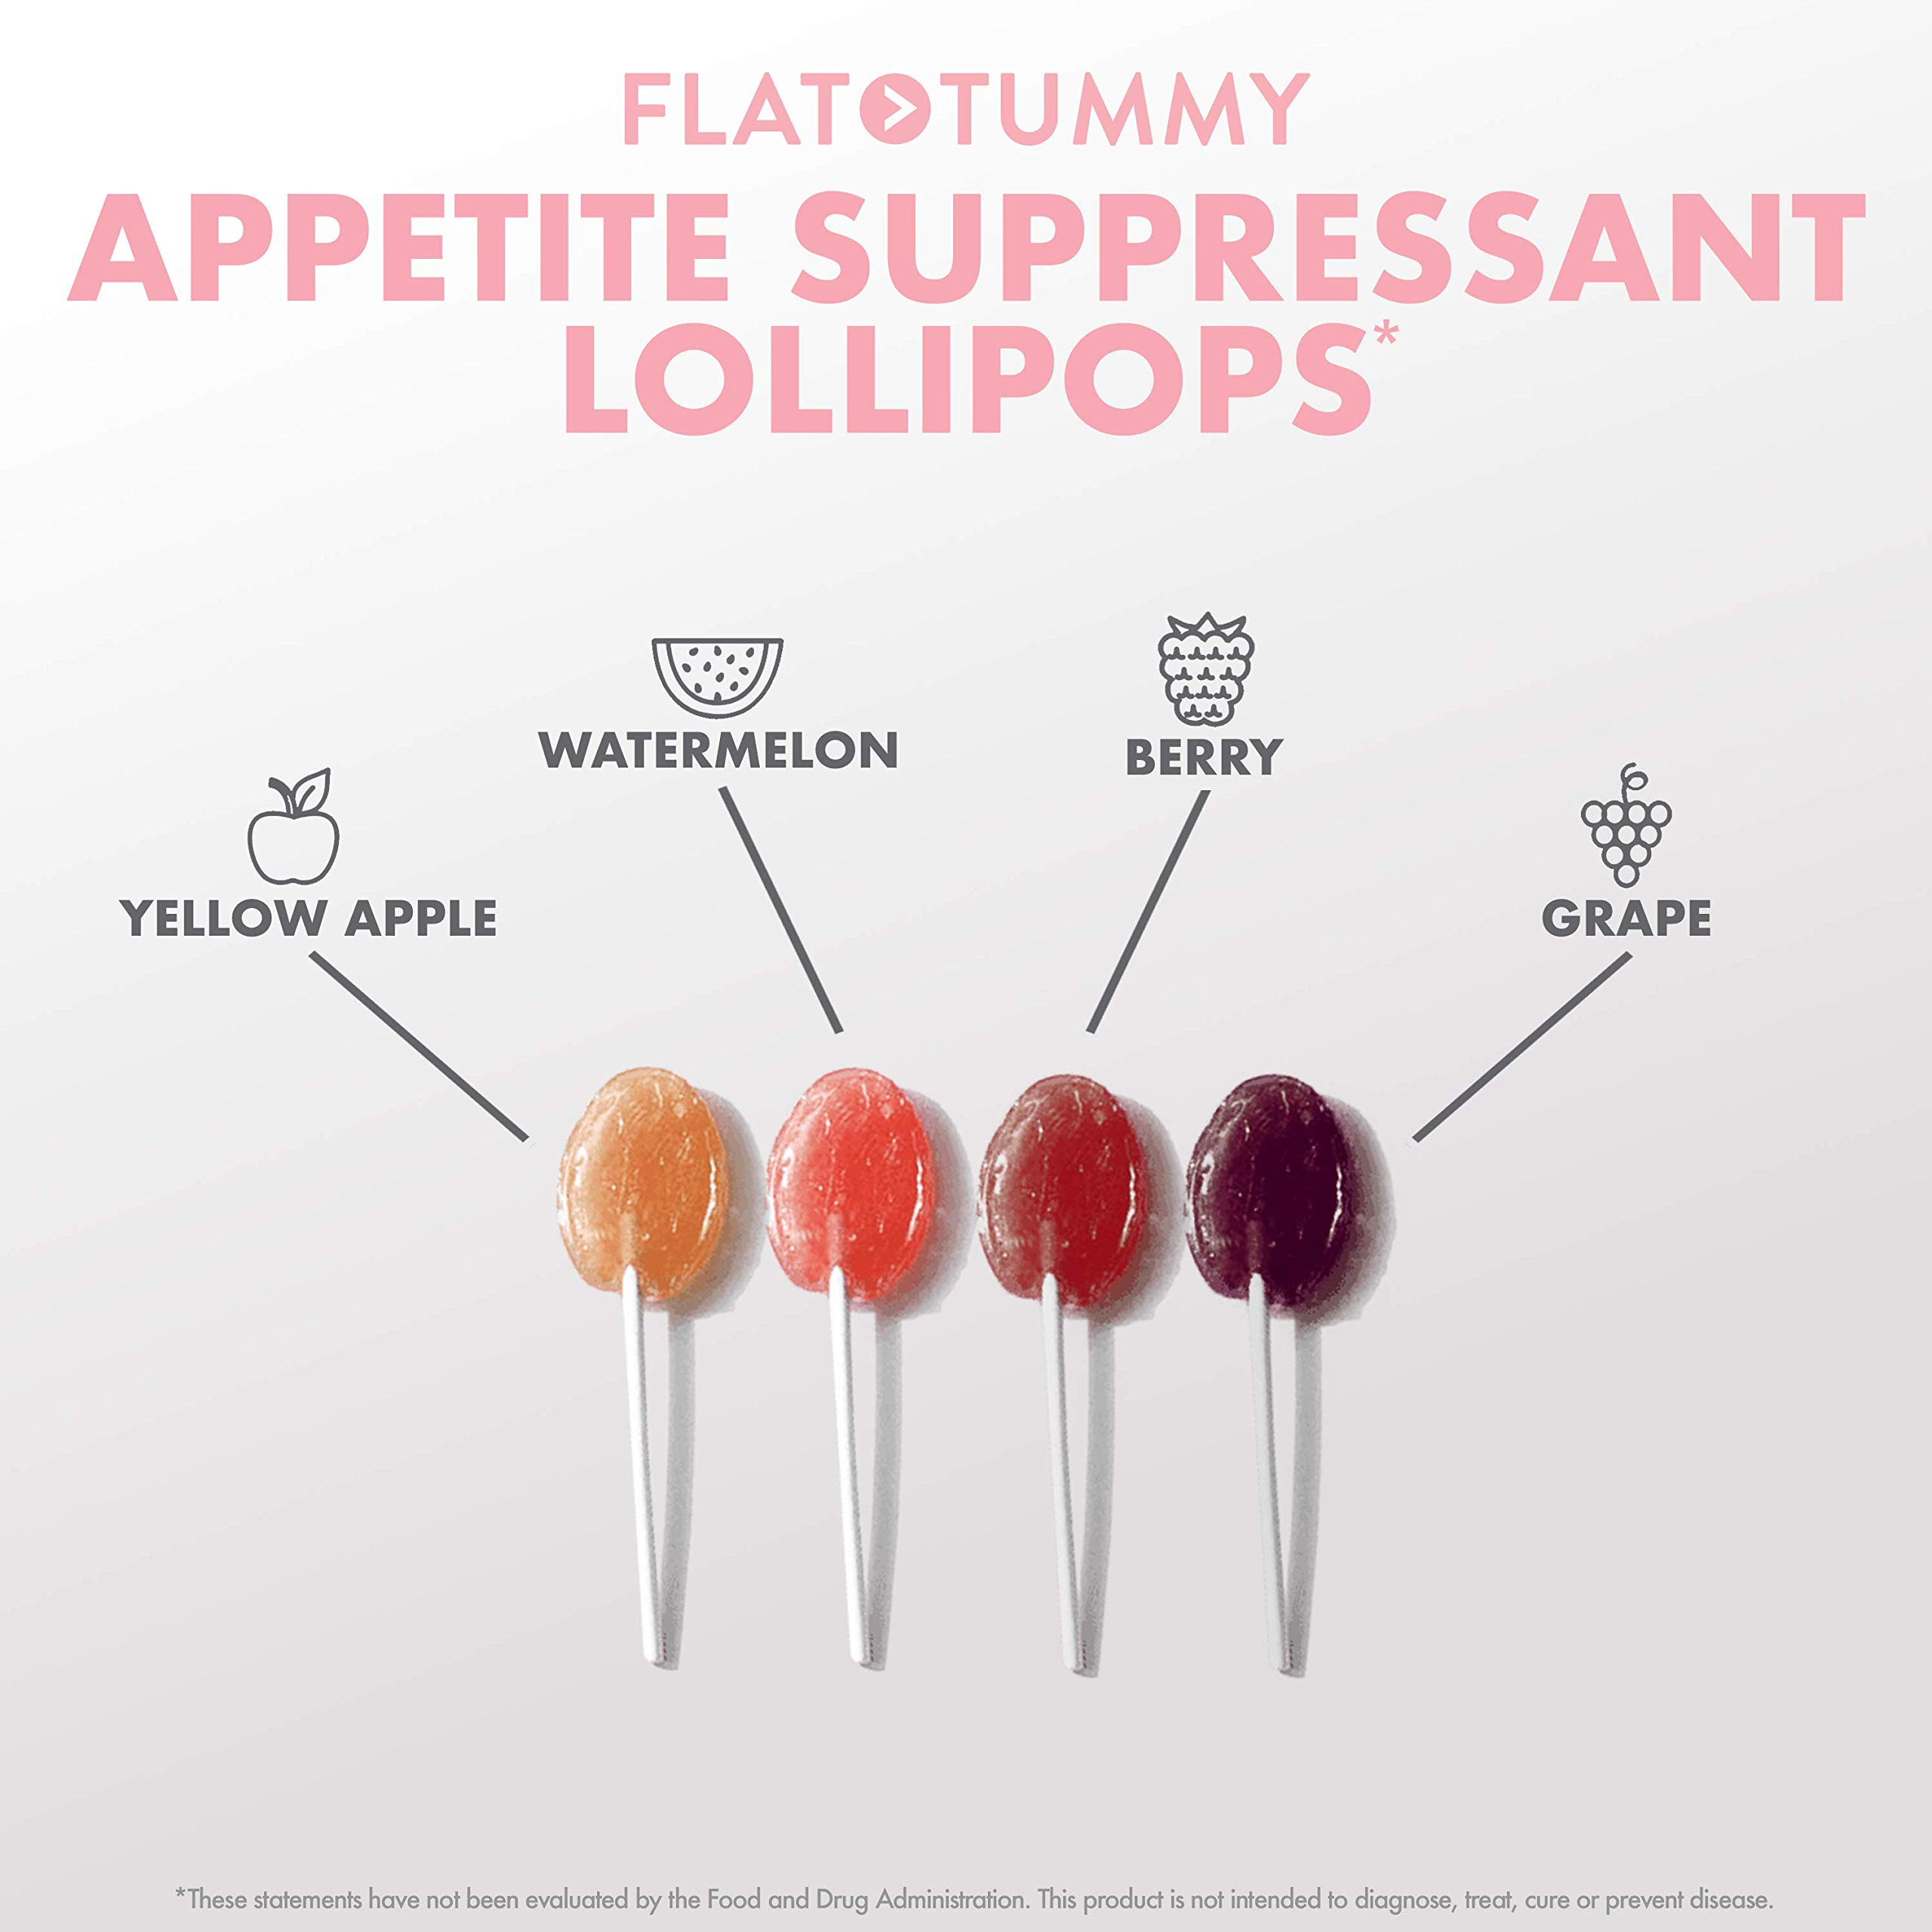 Flat Tummy Appetite Suppressant Lollipops | The Best All Natural Suckers, 4 Great Flavors + Apple, Grape, Watermelon & Berry + Suppress Cravings, The Perfect Low Calorie Diet Candy by Flat Tummy Co. (Image #5)